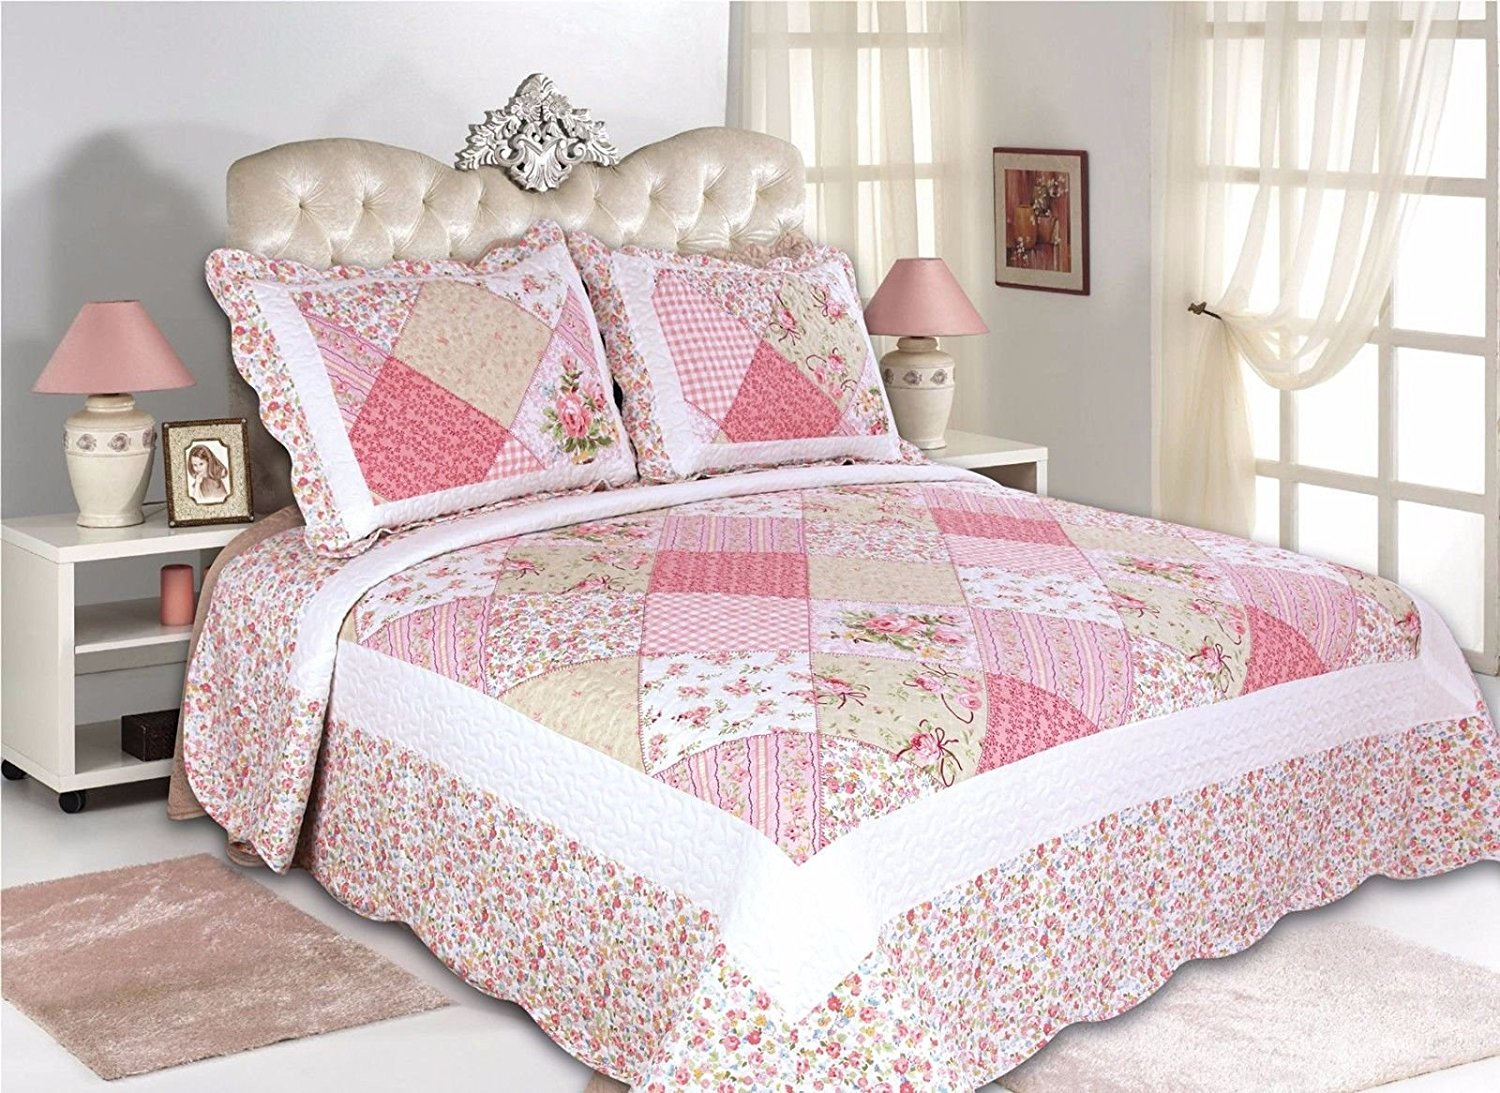 39-All-For-You-3PC-quilt-set-bedspread-coverlet-patchwork-prints/Full-Queen sizes